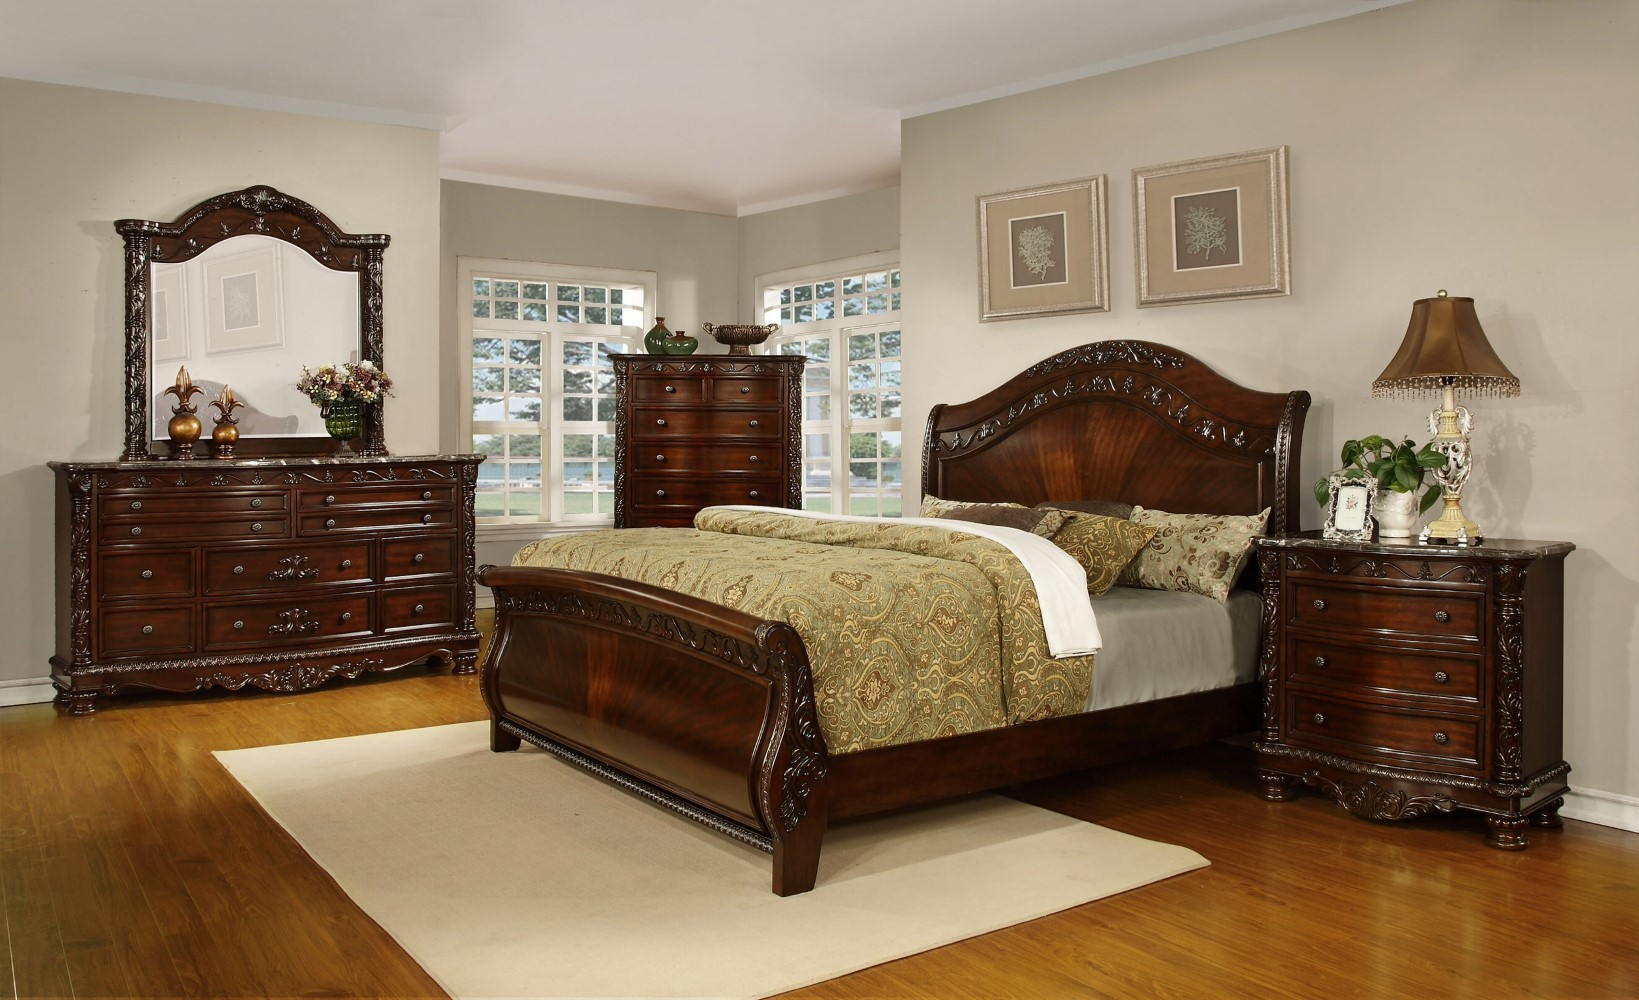 Fairfax Home Furnishings Fairfax Home Furnishings Patterson Sleigh